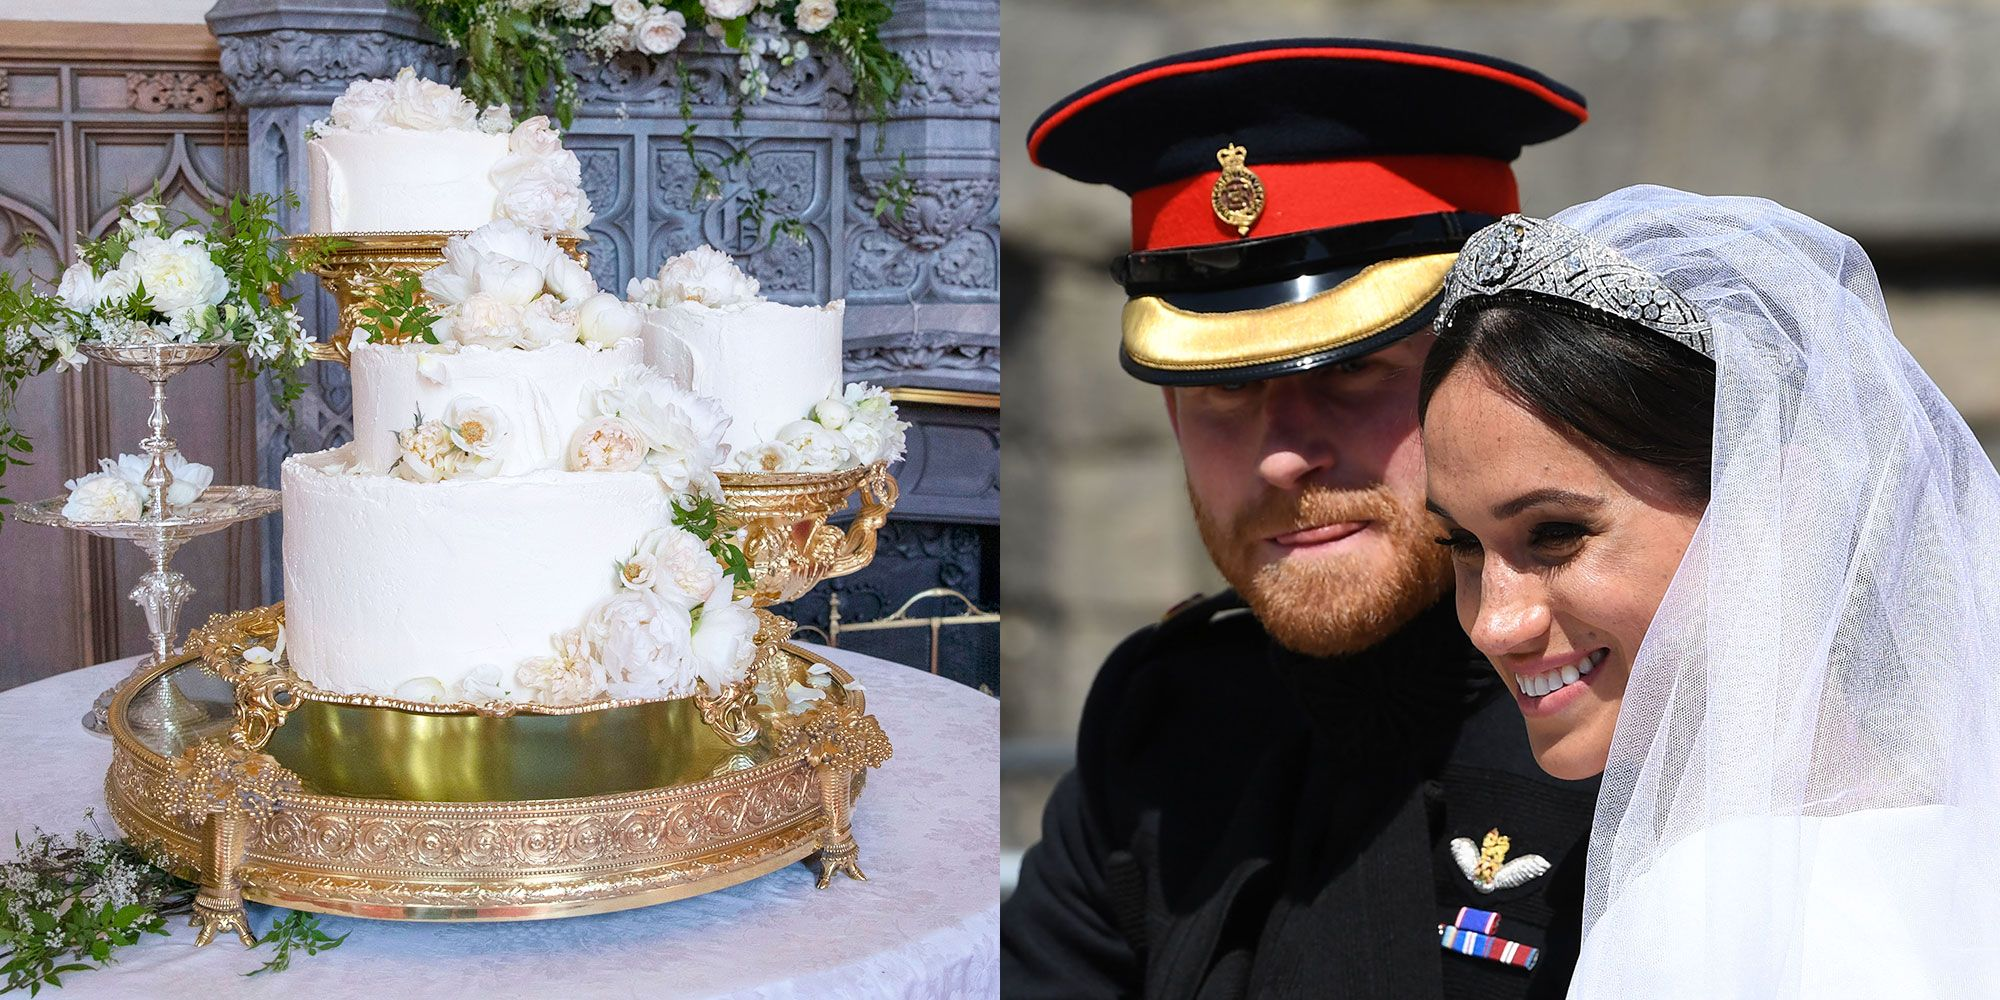 royal wedding cake 2018 flavor all the cakes royals served at their weddings royal 19411